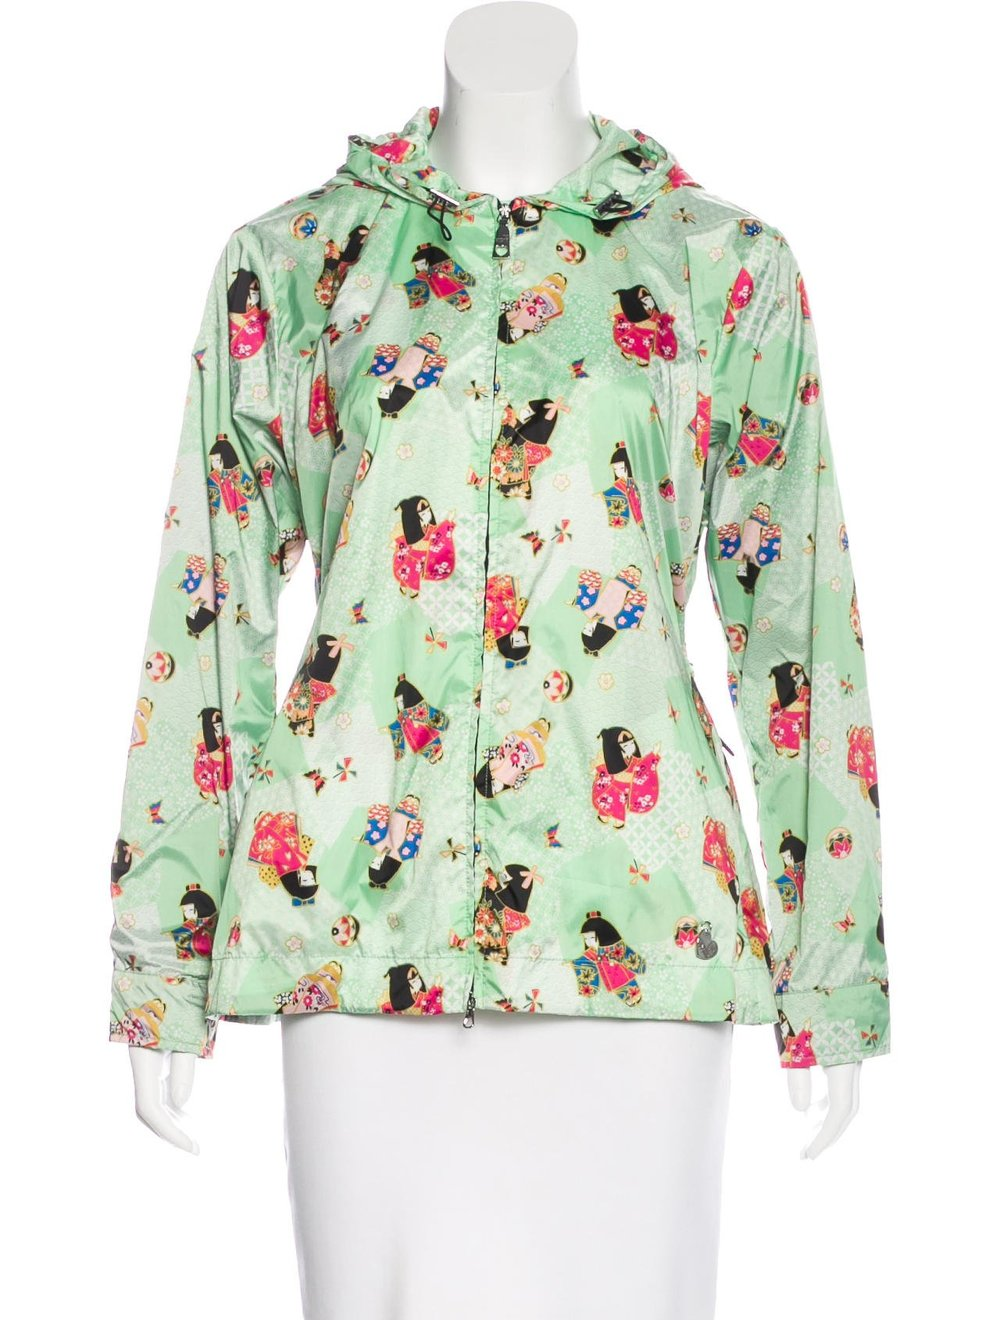 LOVE MOSCHINO Printed Hooded Jacket; Size: US 4; $125.00